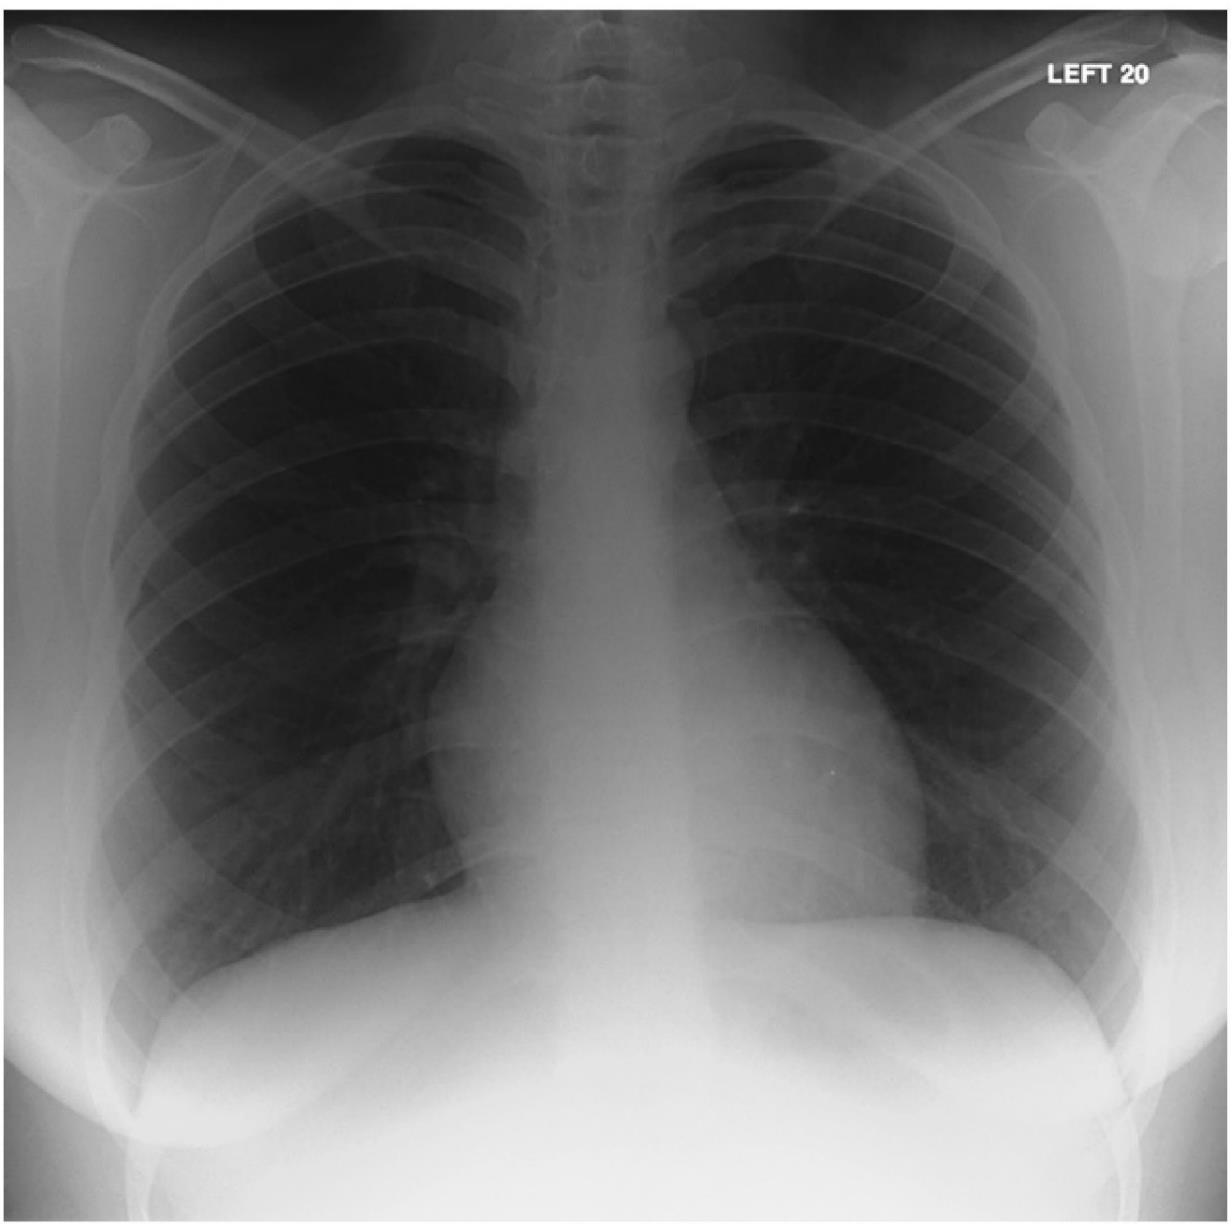 C:\Users\Administrator\Desktop\Chest X-Ray in Clinical Practice _ap_026.jpg